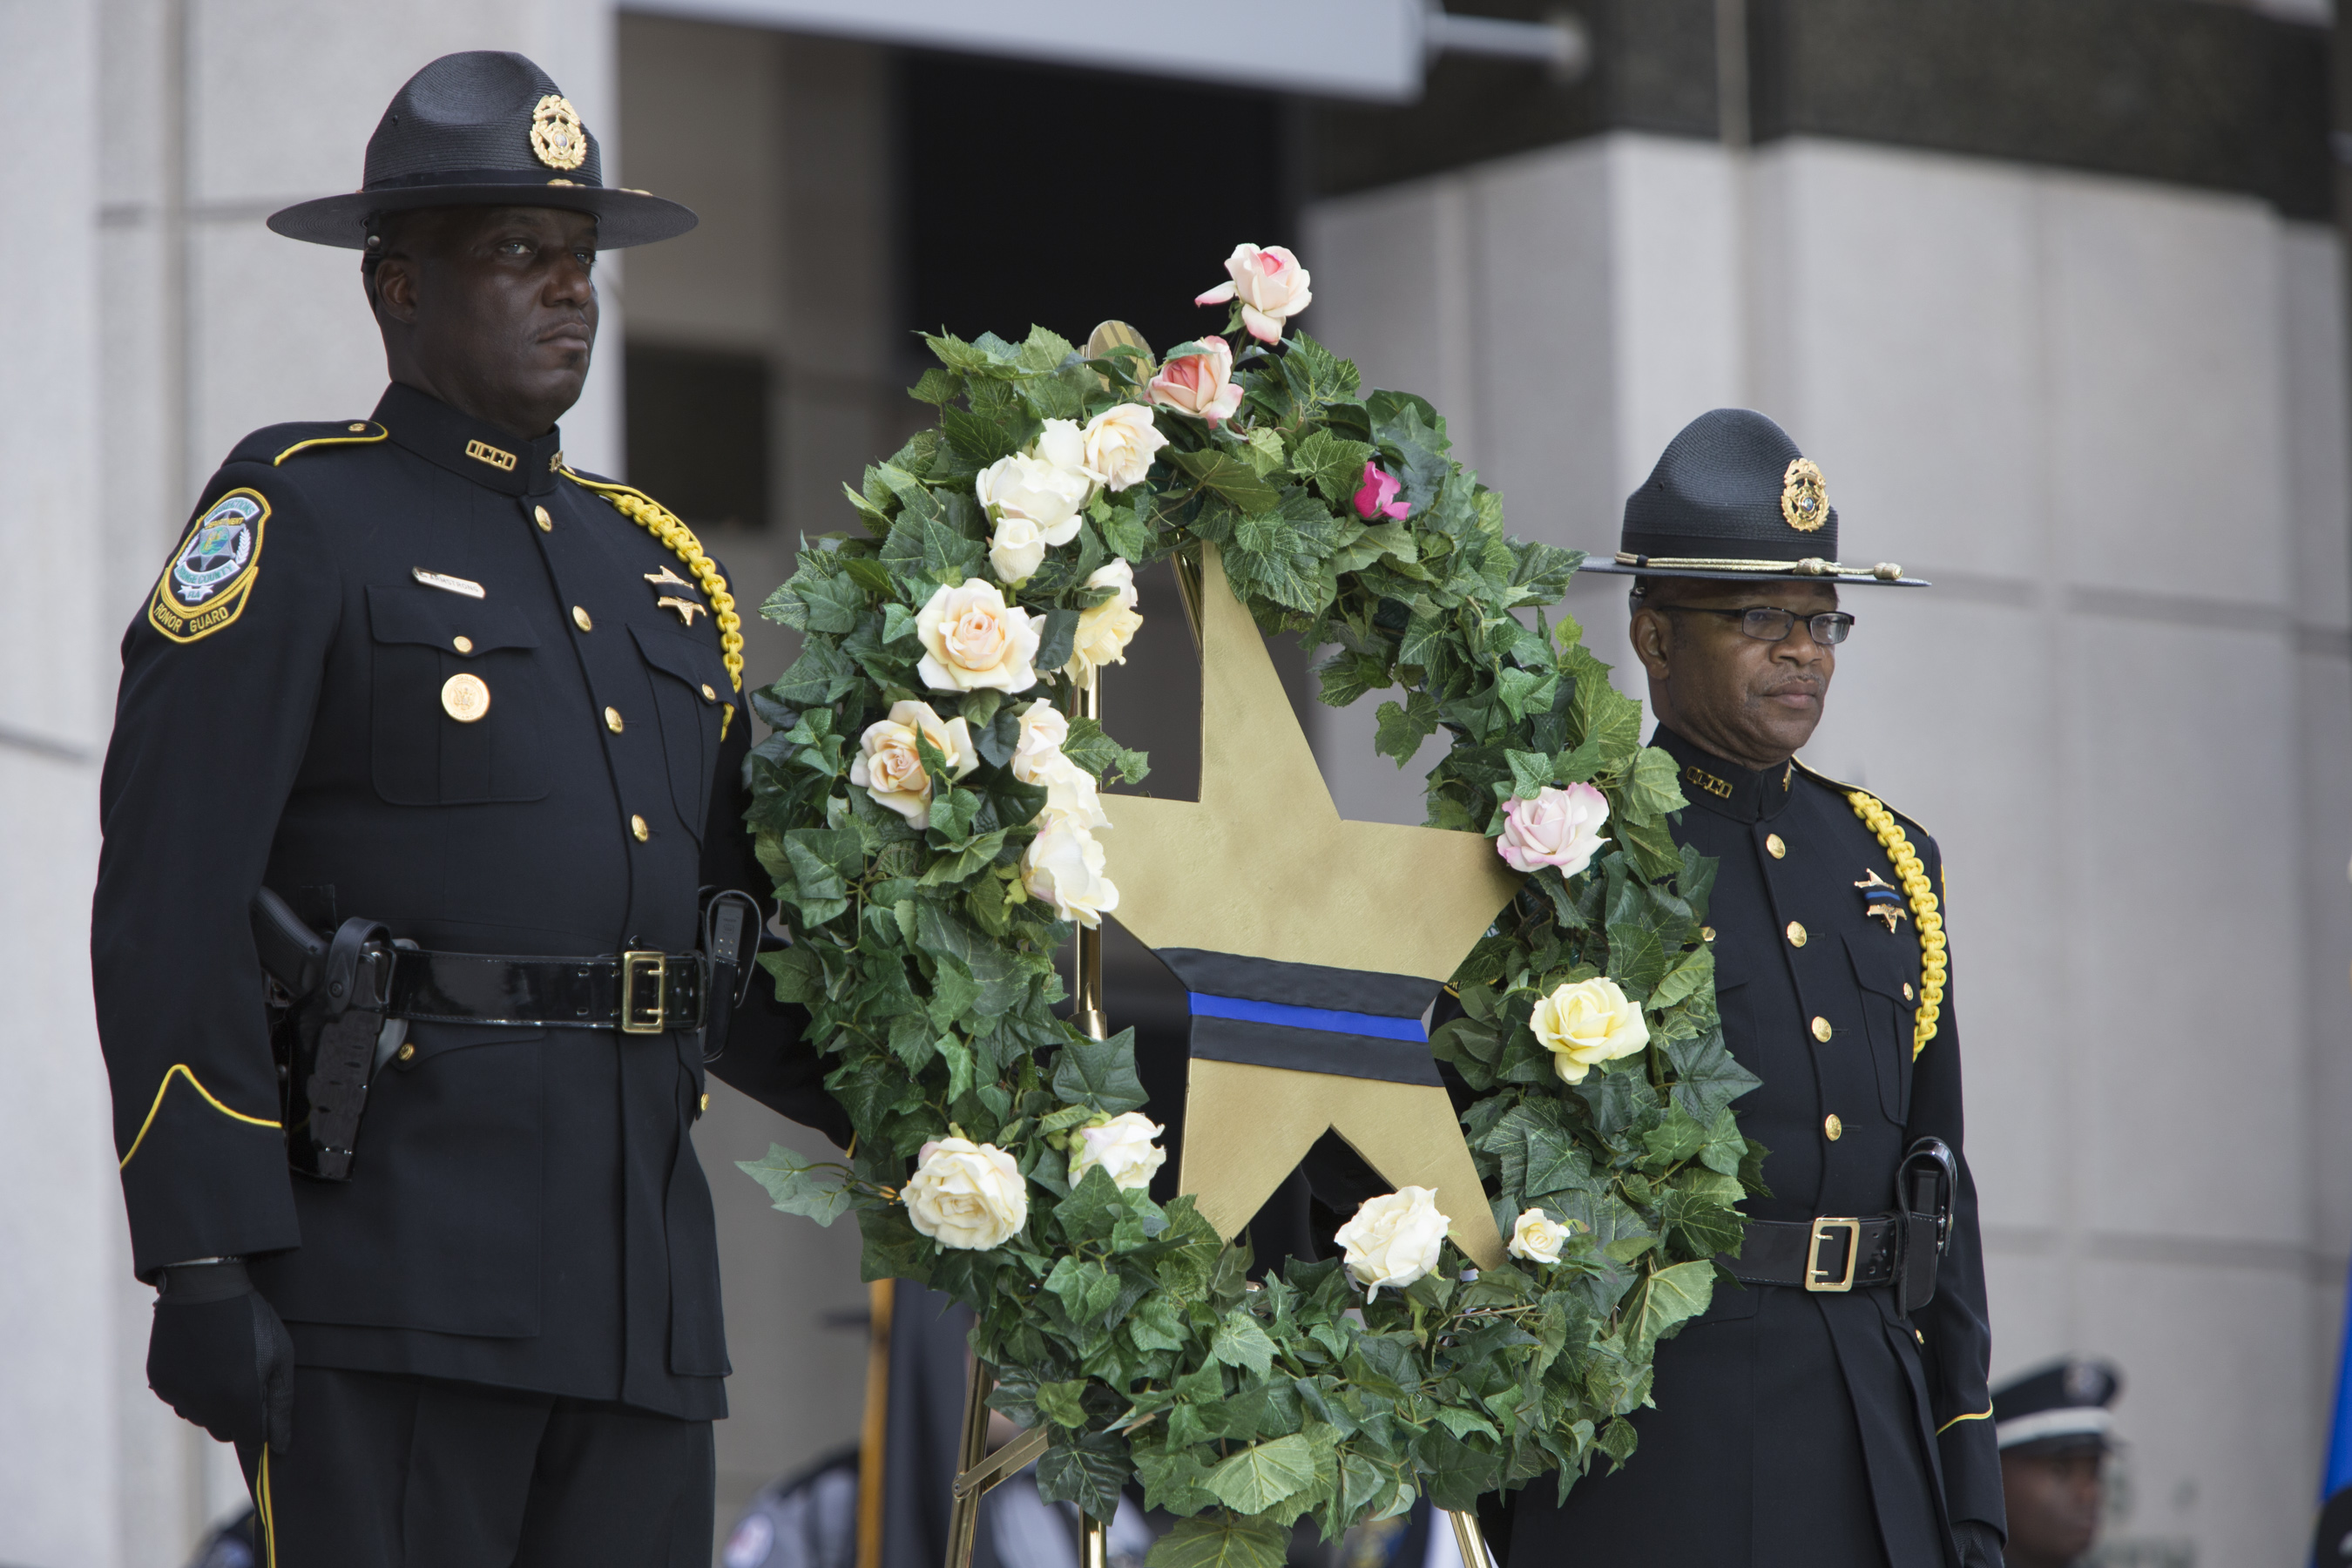 Two law enforcement officers carrying a wreath